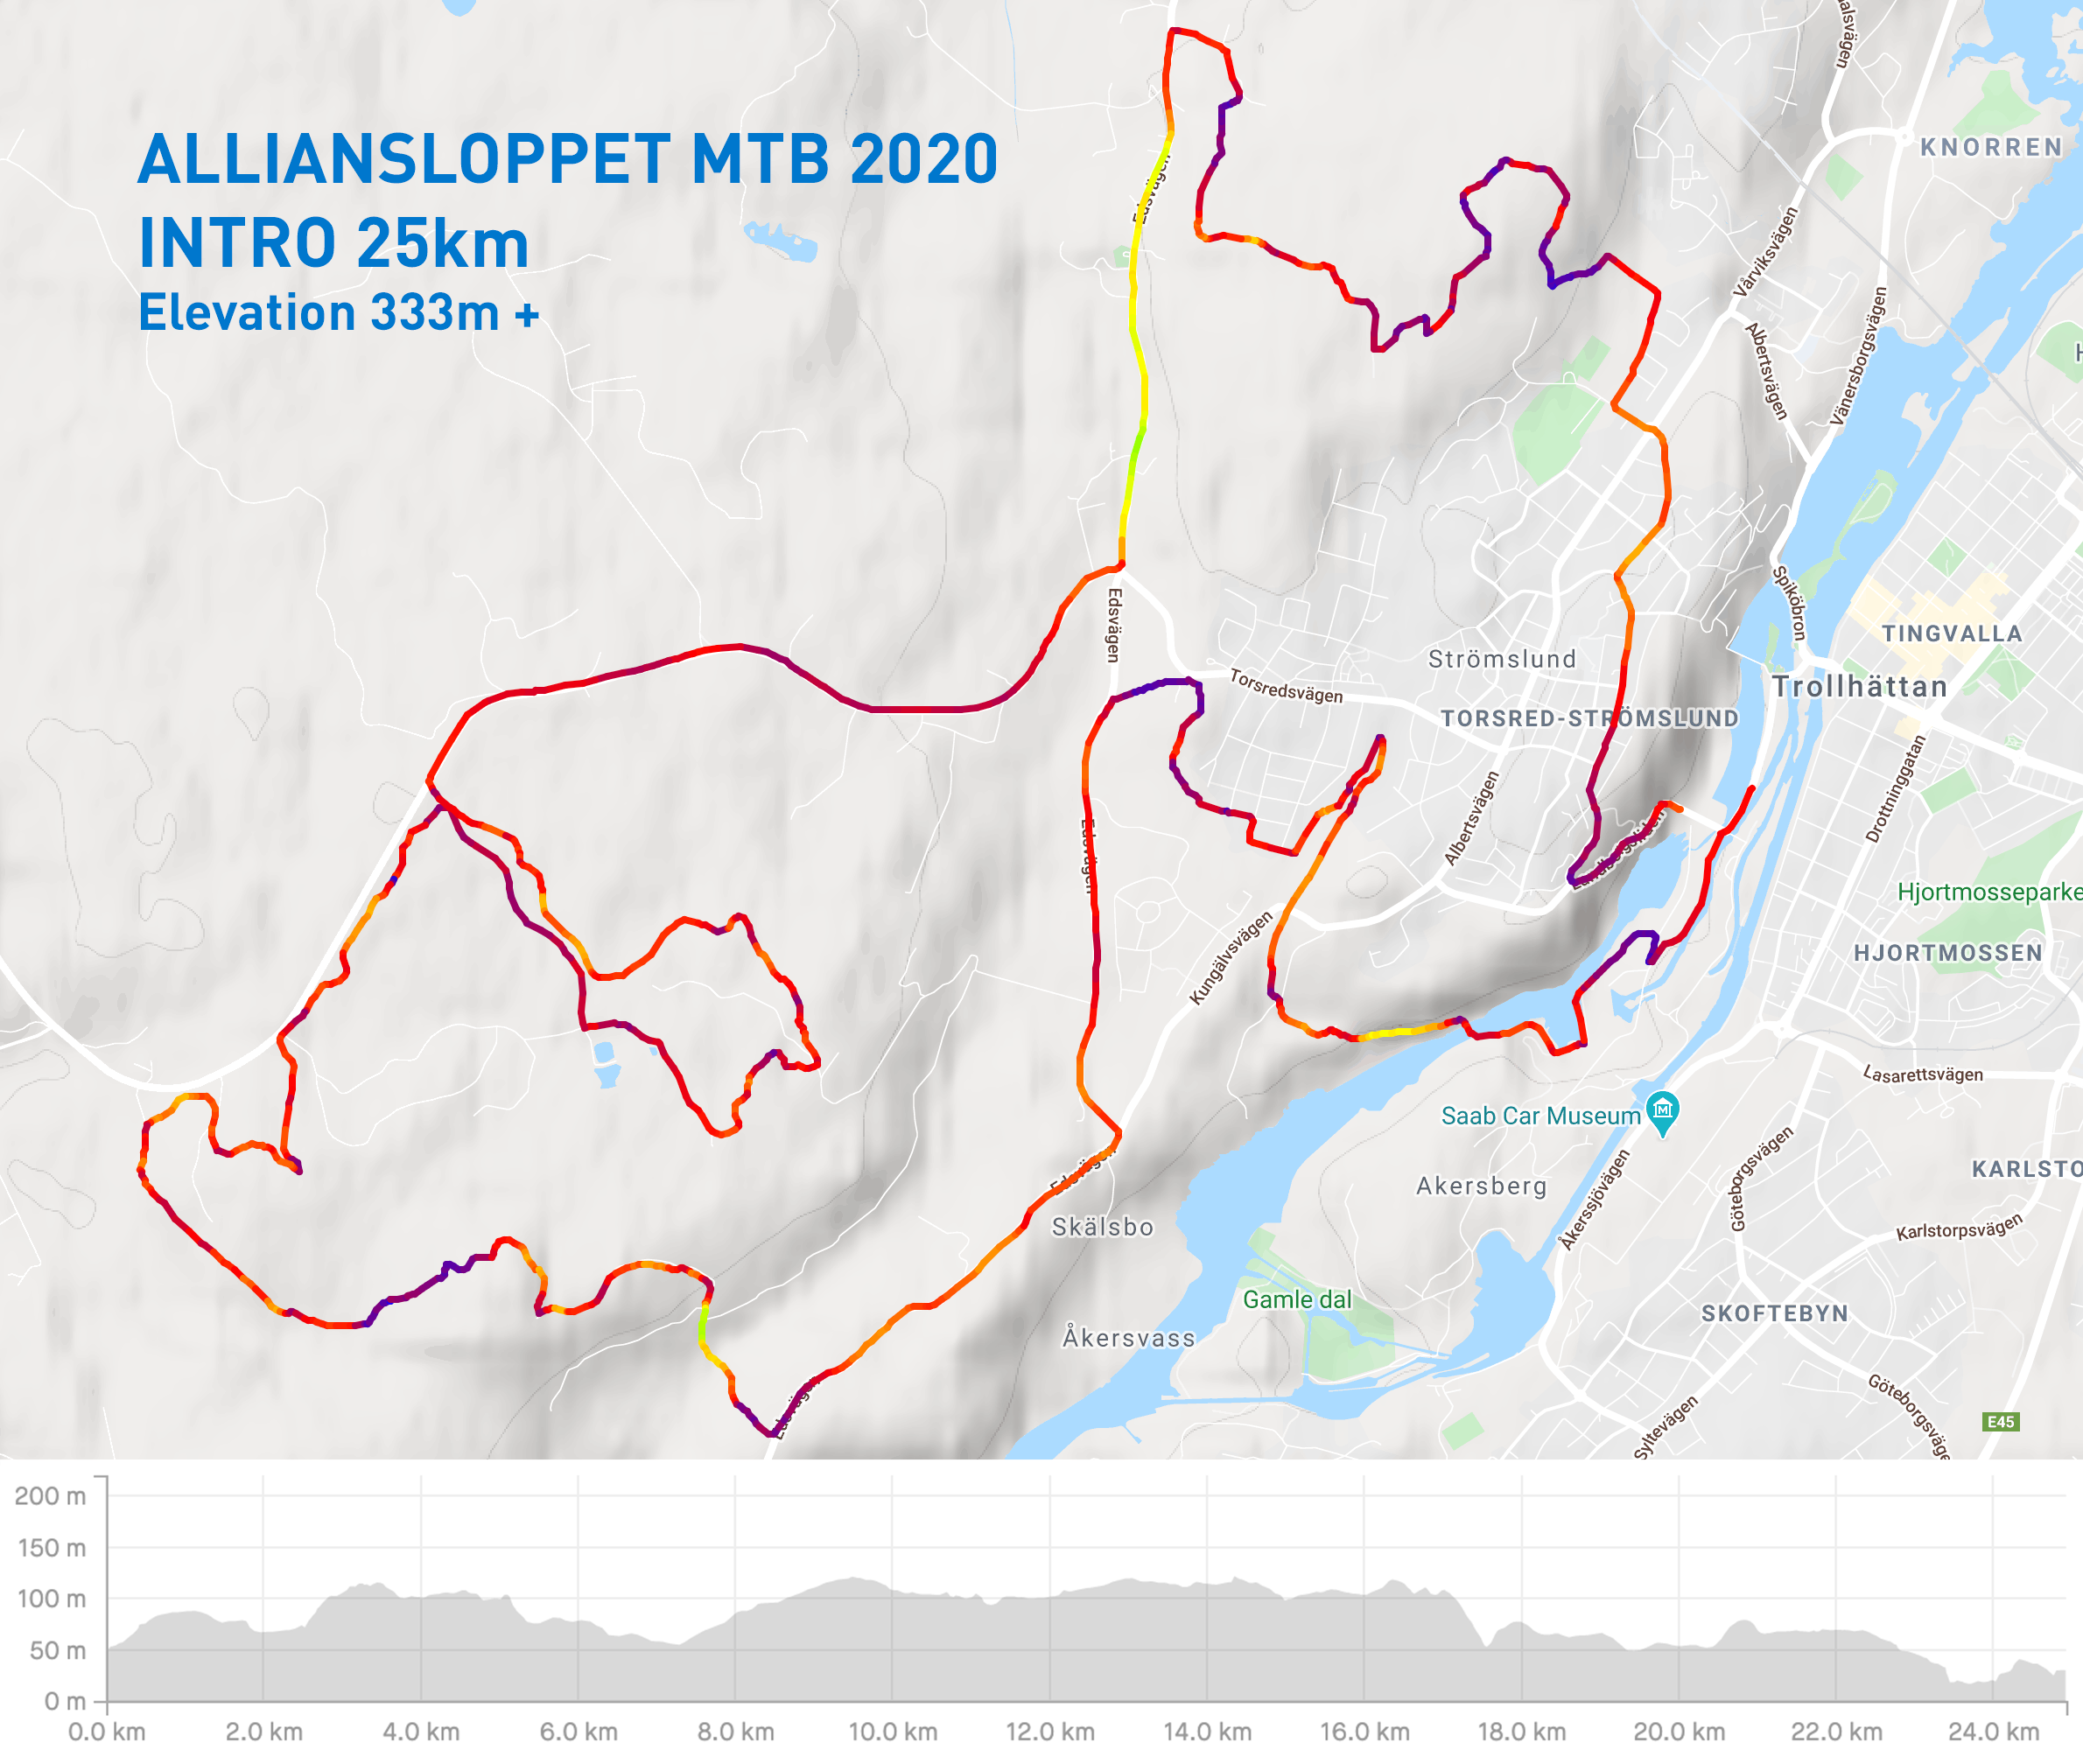 Alliansloppet MTB intro 25km 2020